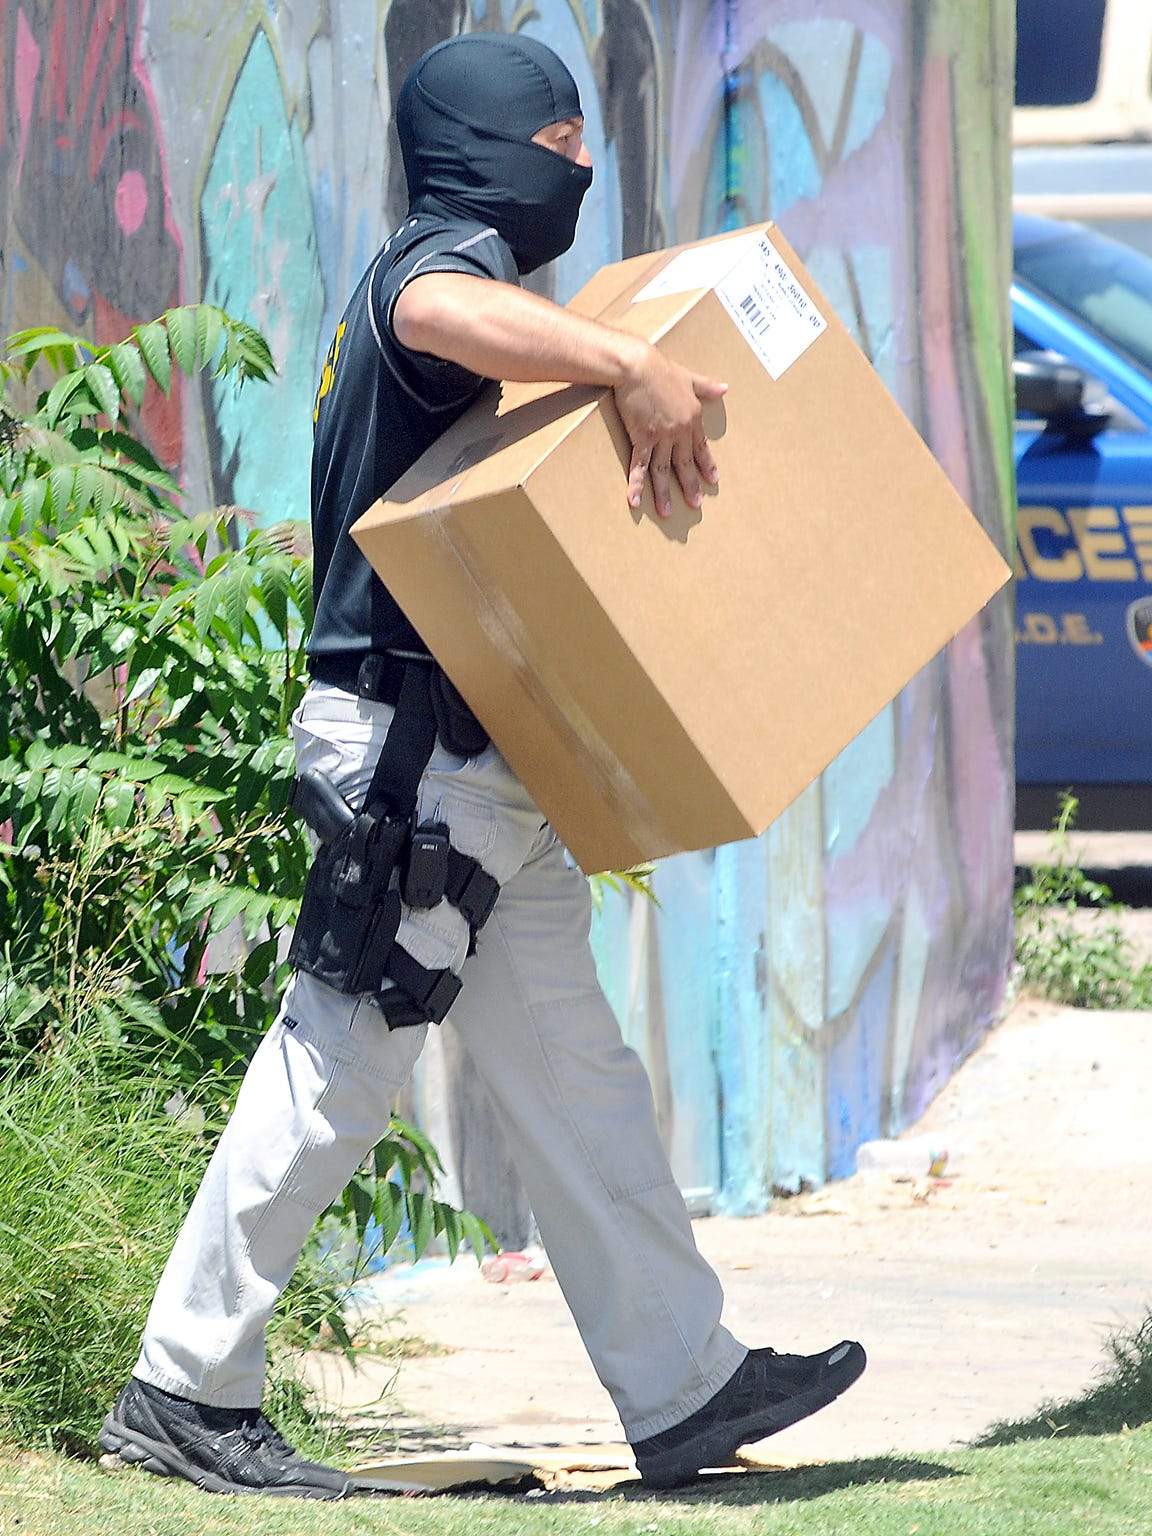 A masked DEA agent carries evidence out of Phat Glass, 1211 E. Idaho Ave., on July 25, 2012, while federal and local law enforcement officers raided 14 area smoke shops as part of a wider investigation into synthetic drug sales.